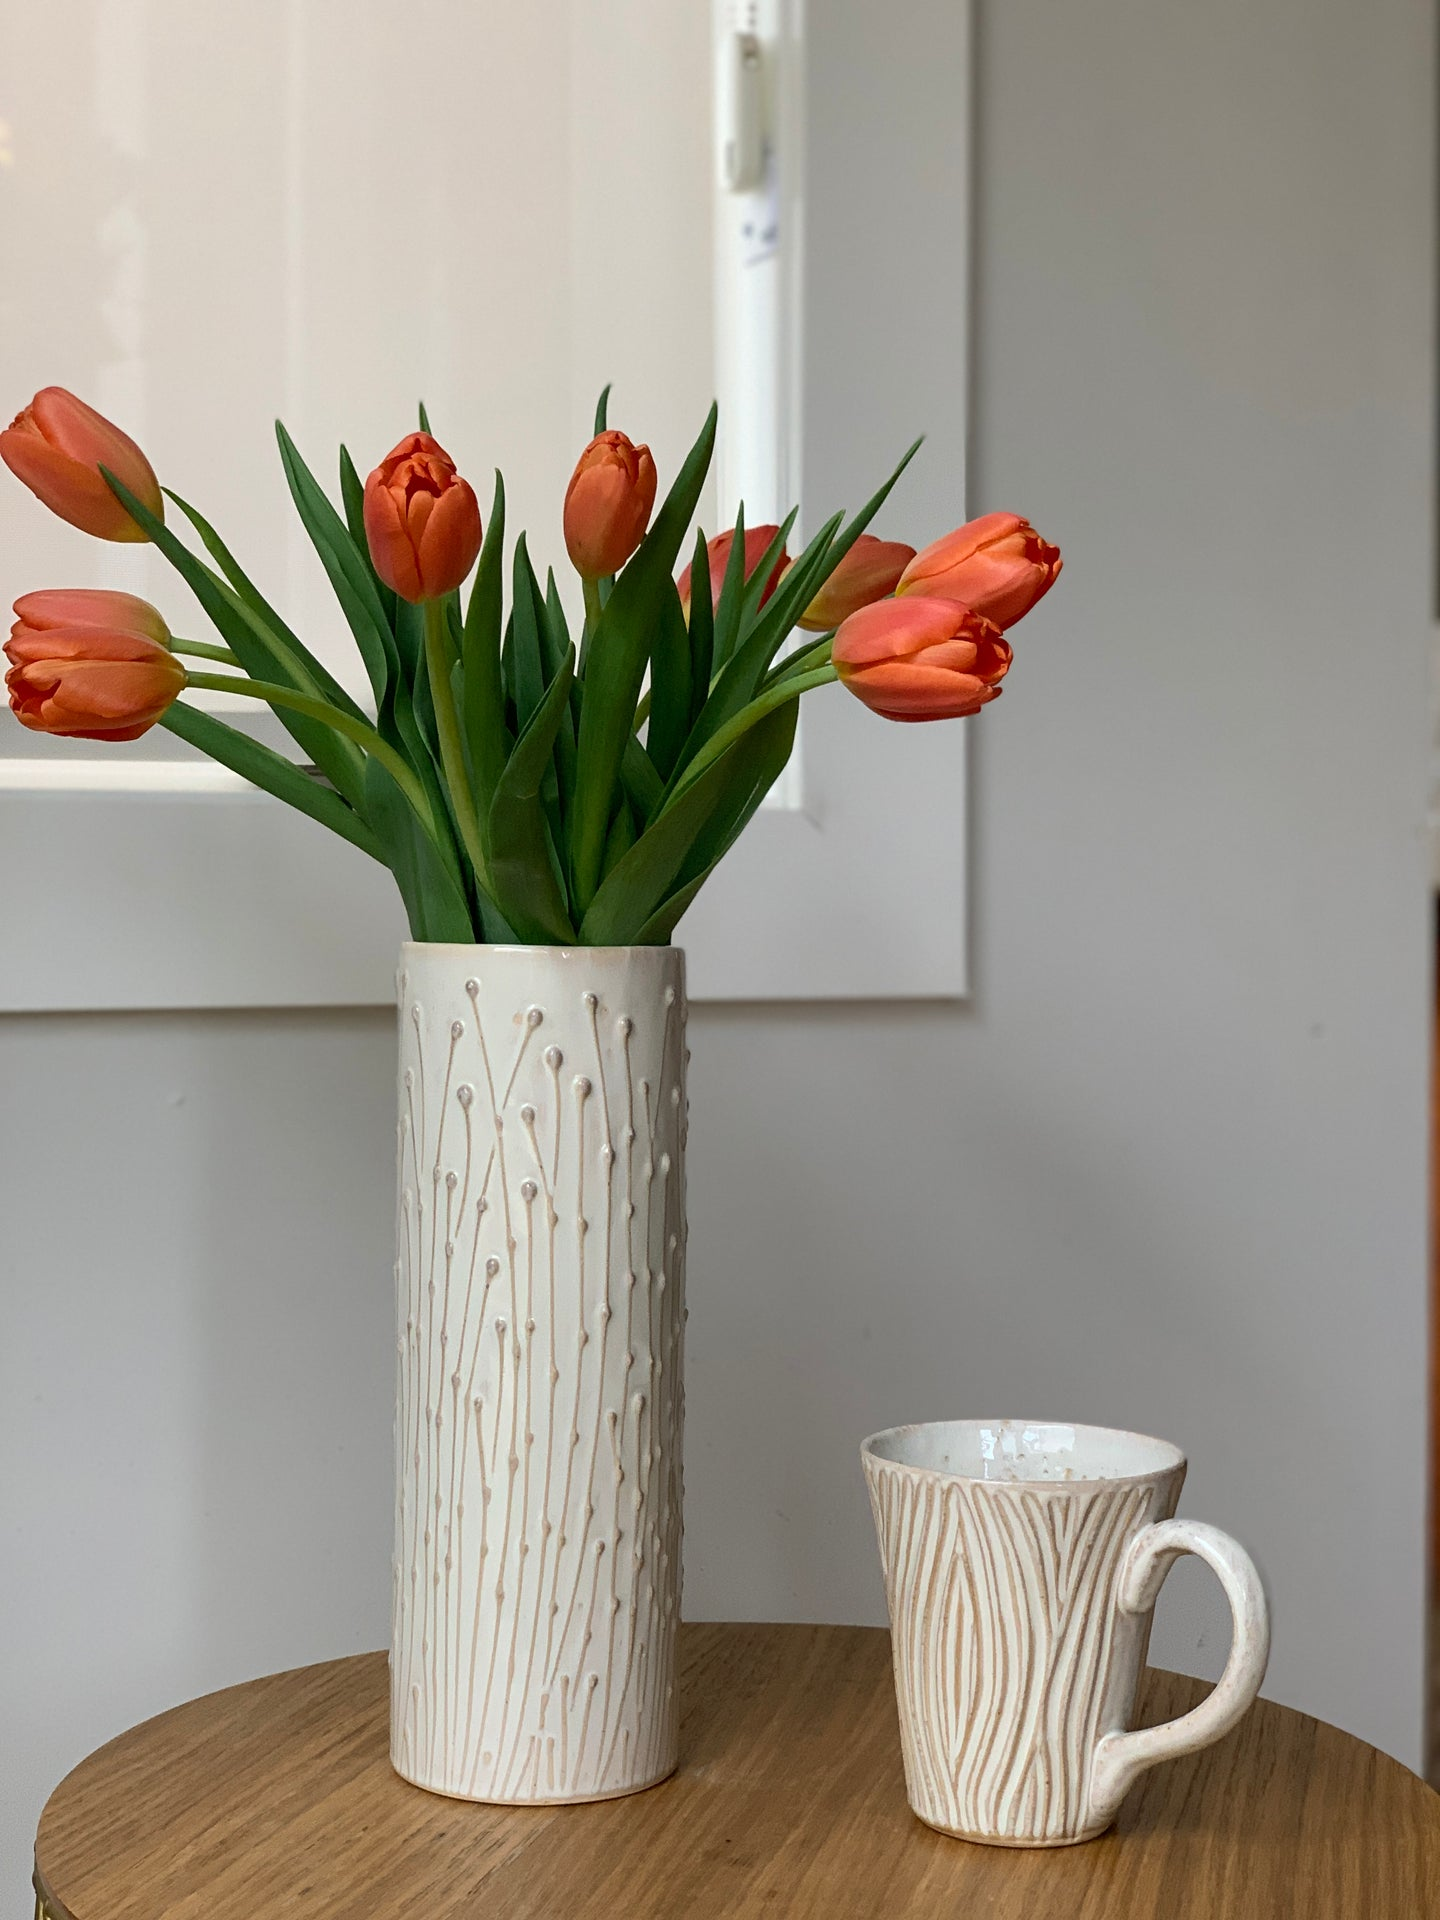 OATMEAL CYLINDER VASE WITH PUSSY WILLOWS